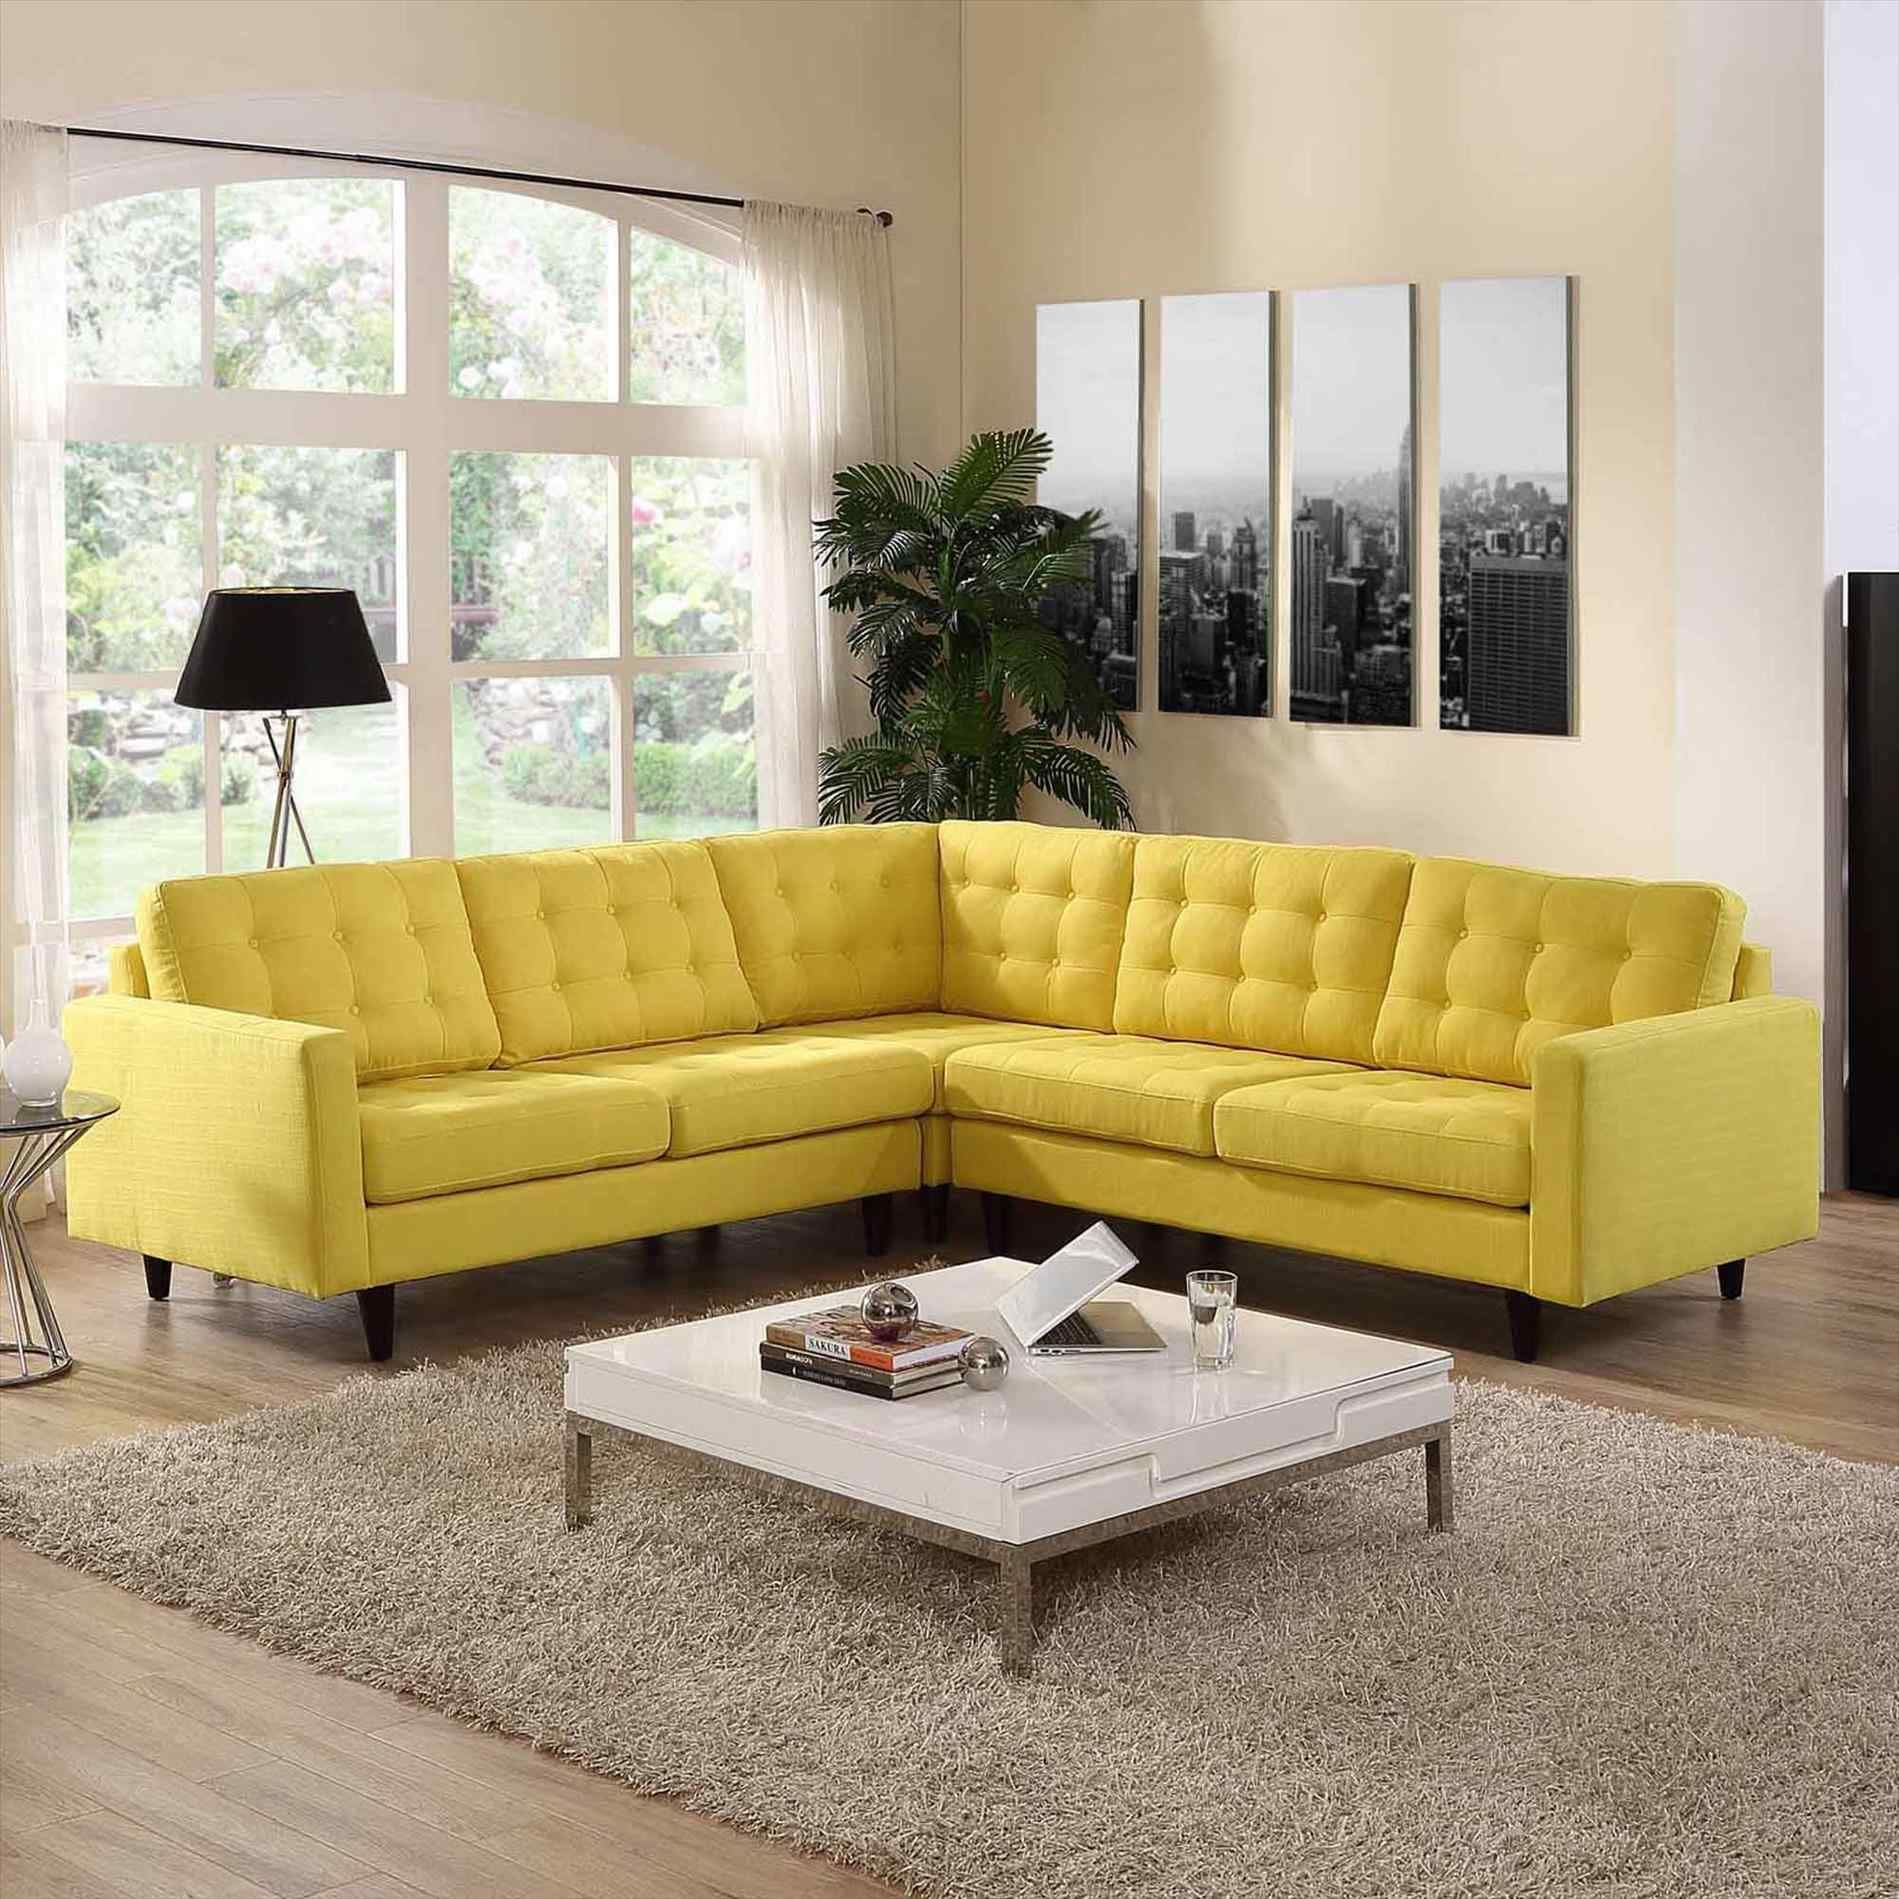 Super Ashley Furniture And Beautiful Under Beautiful Sectional Pdpeps Interior Chair Design Pdpepsorg